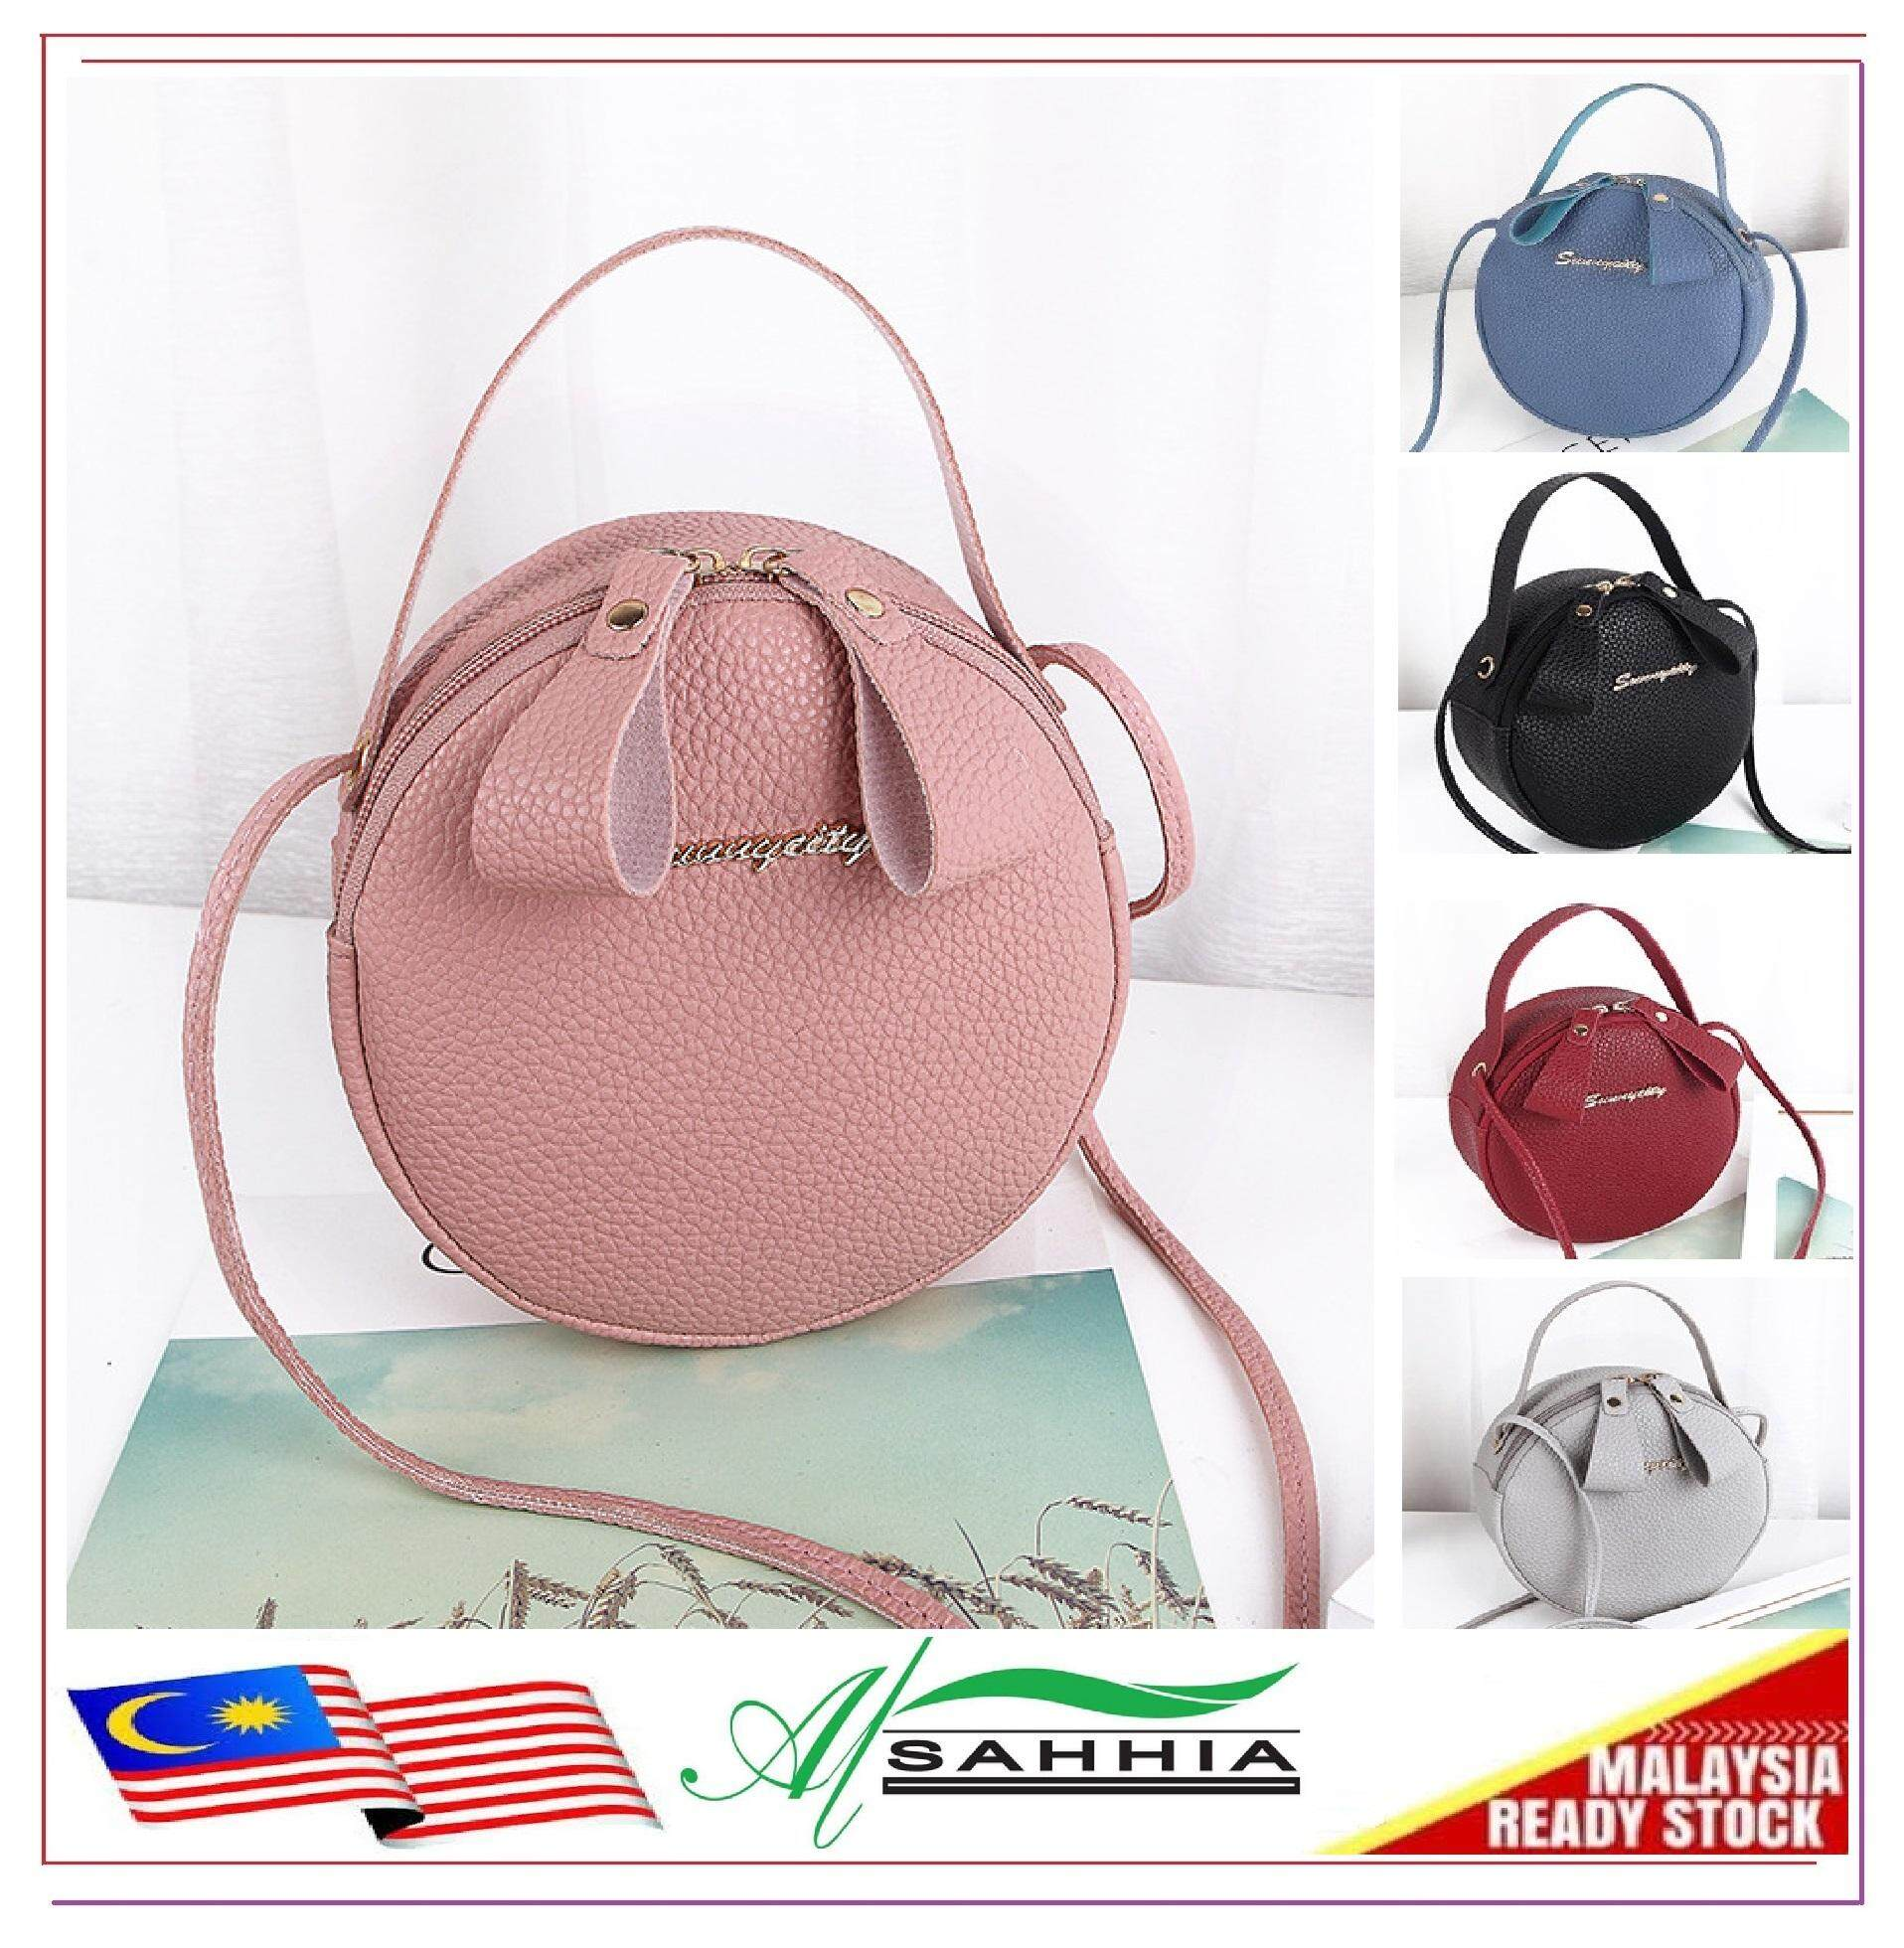 Al Sahhia Ready Stock Sunny City Round Tote Sling Bag d9332990b6